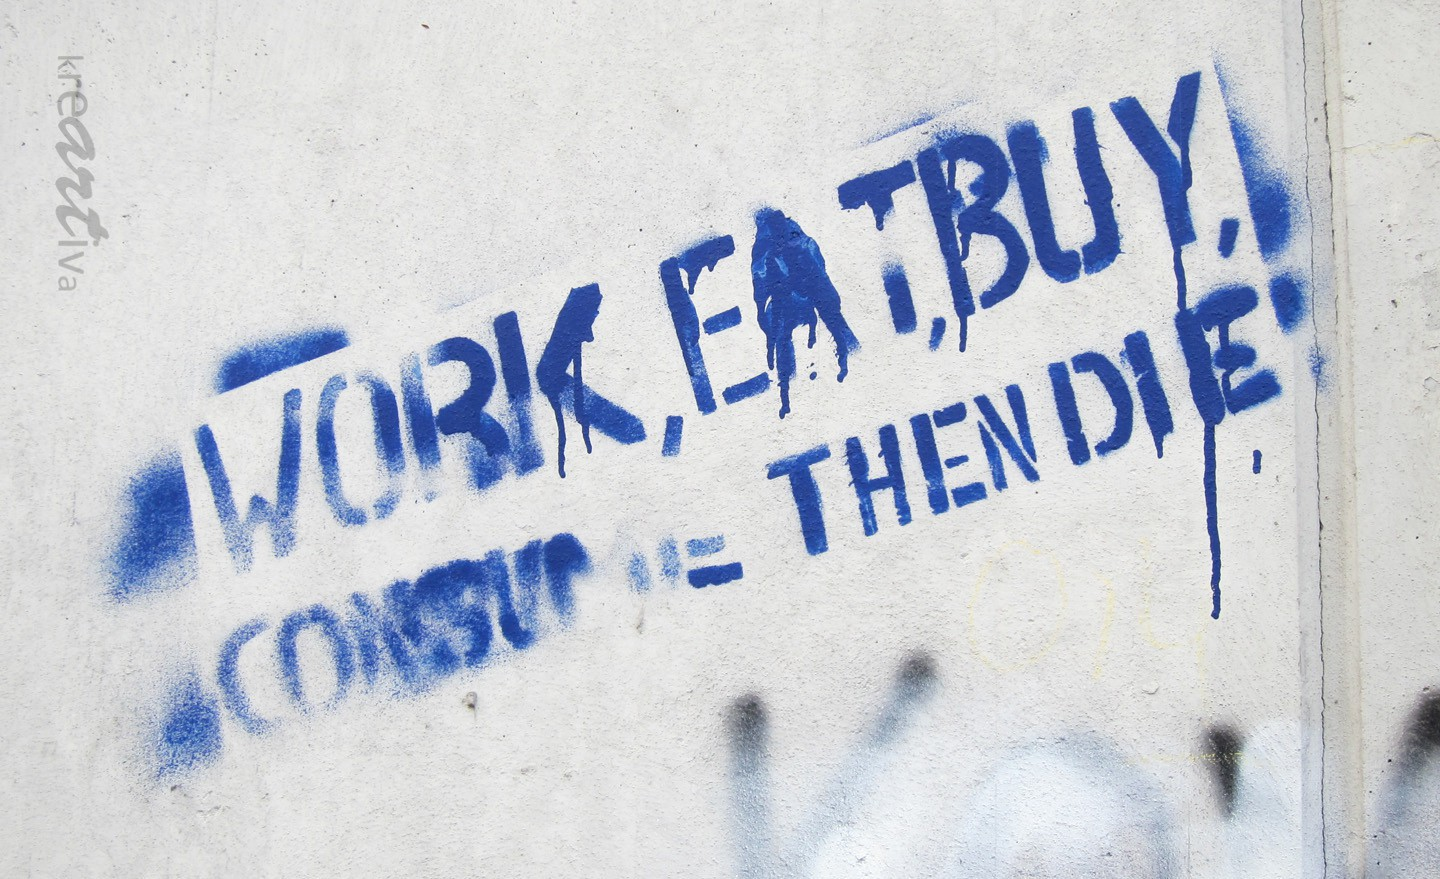 work, eat, buy, consume then die. Erlangen Germany 2014.